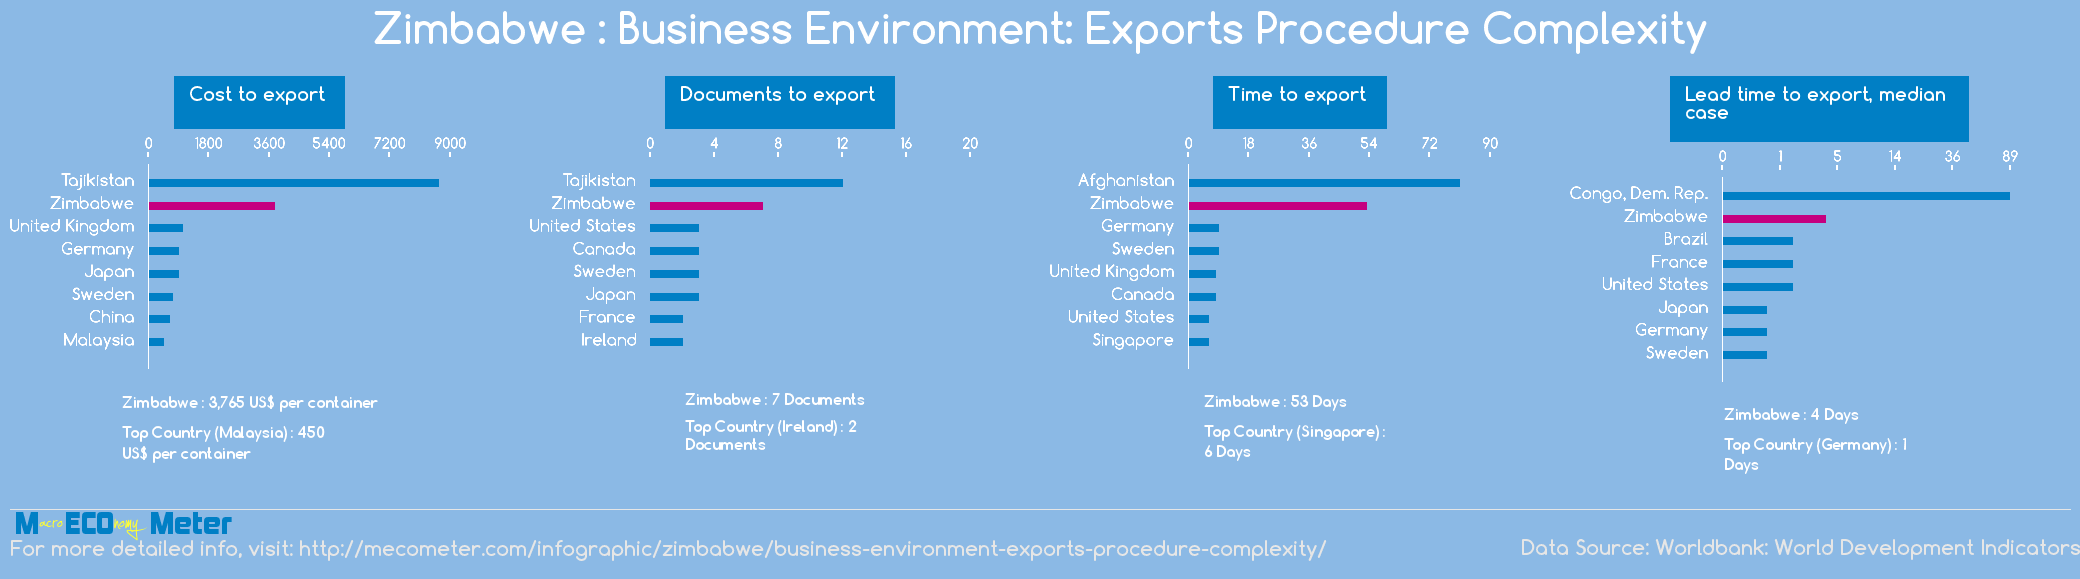 Zimbabwe : Business Environment: Exports Procedure Complexity